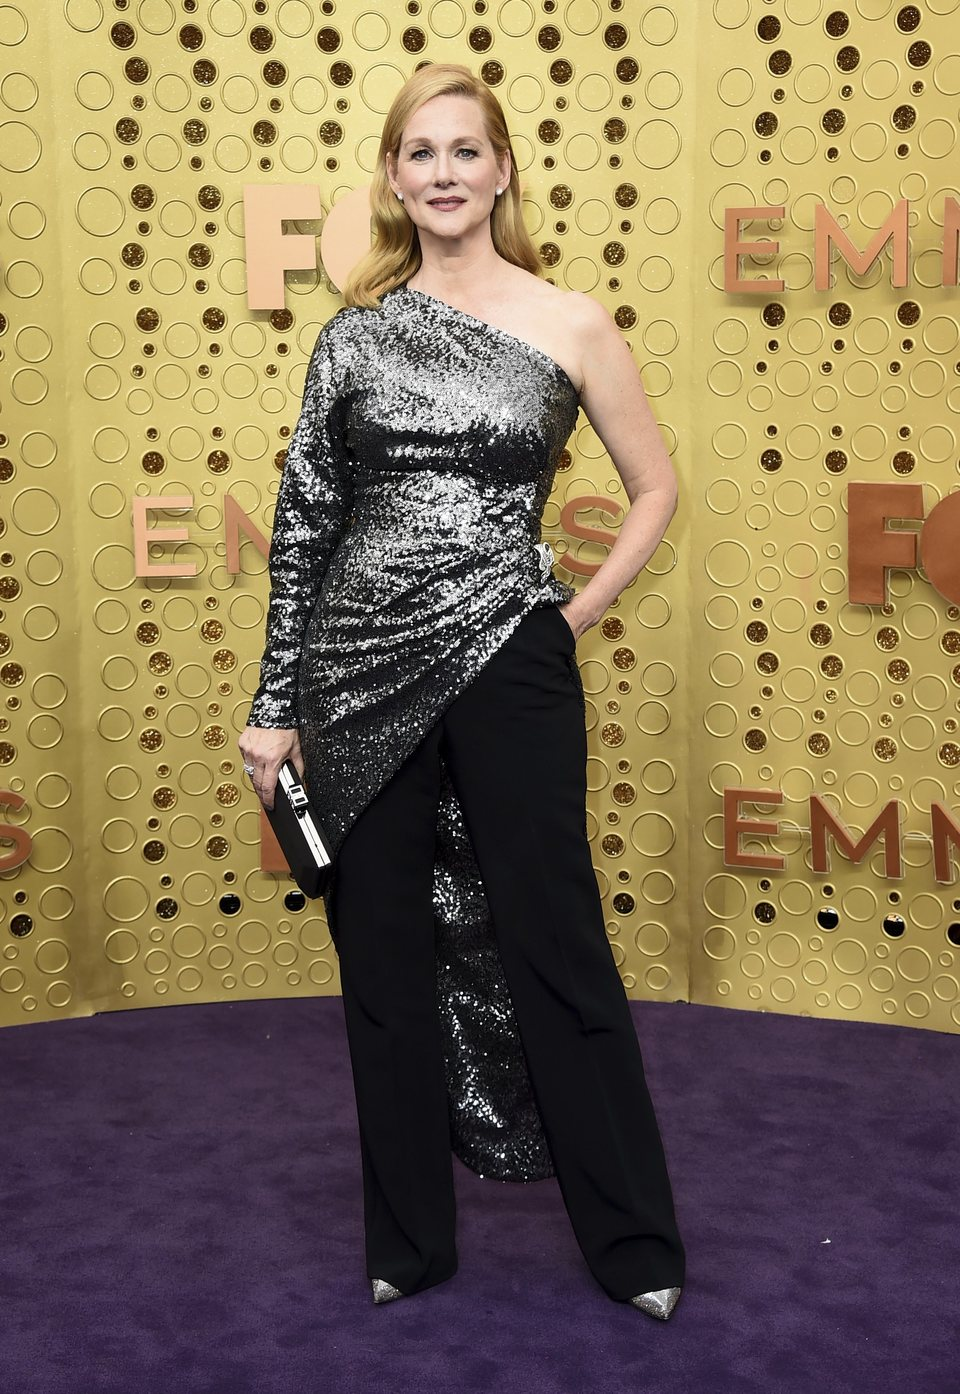 Laura Linney arrives at the 71st Primetime Emmy Awards